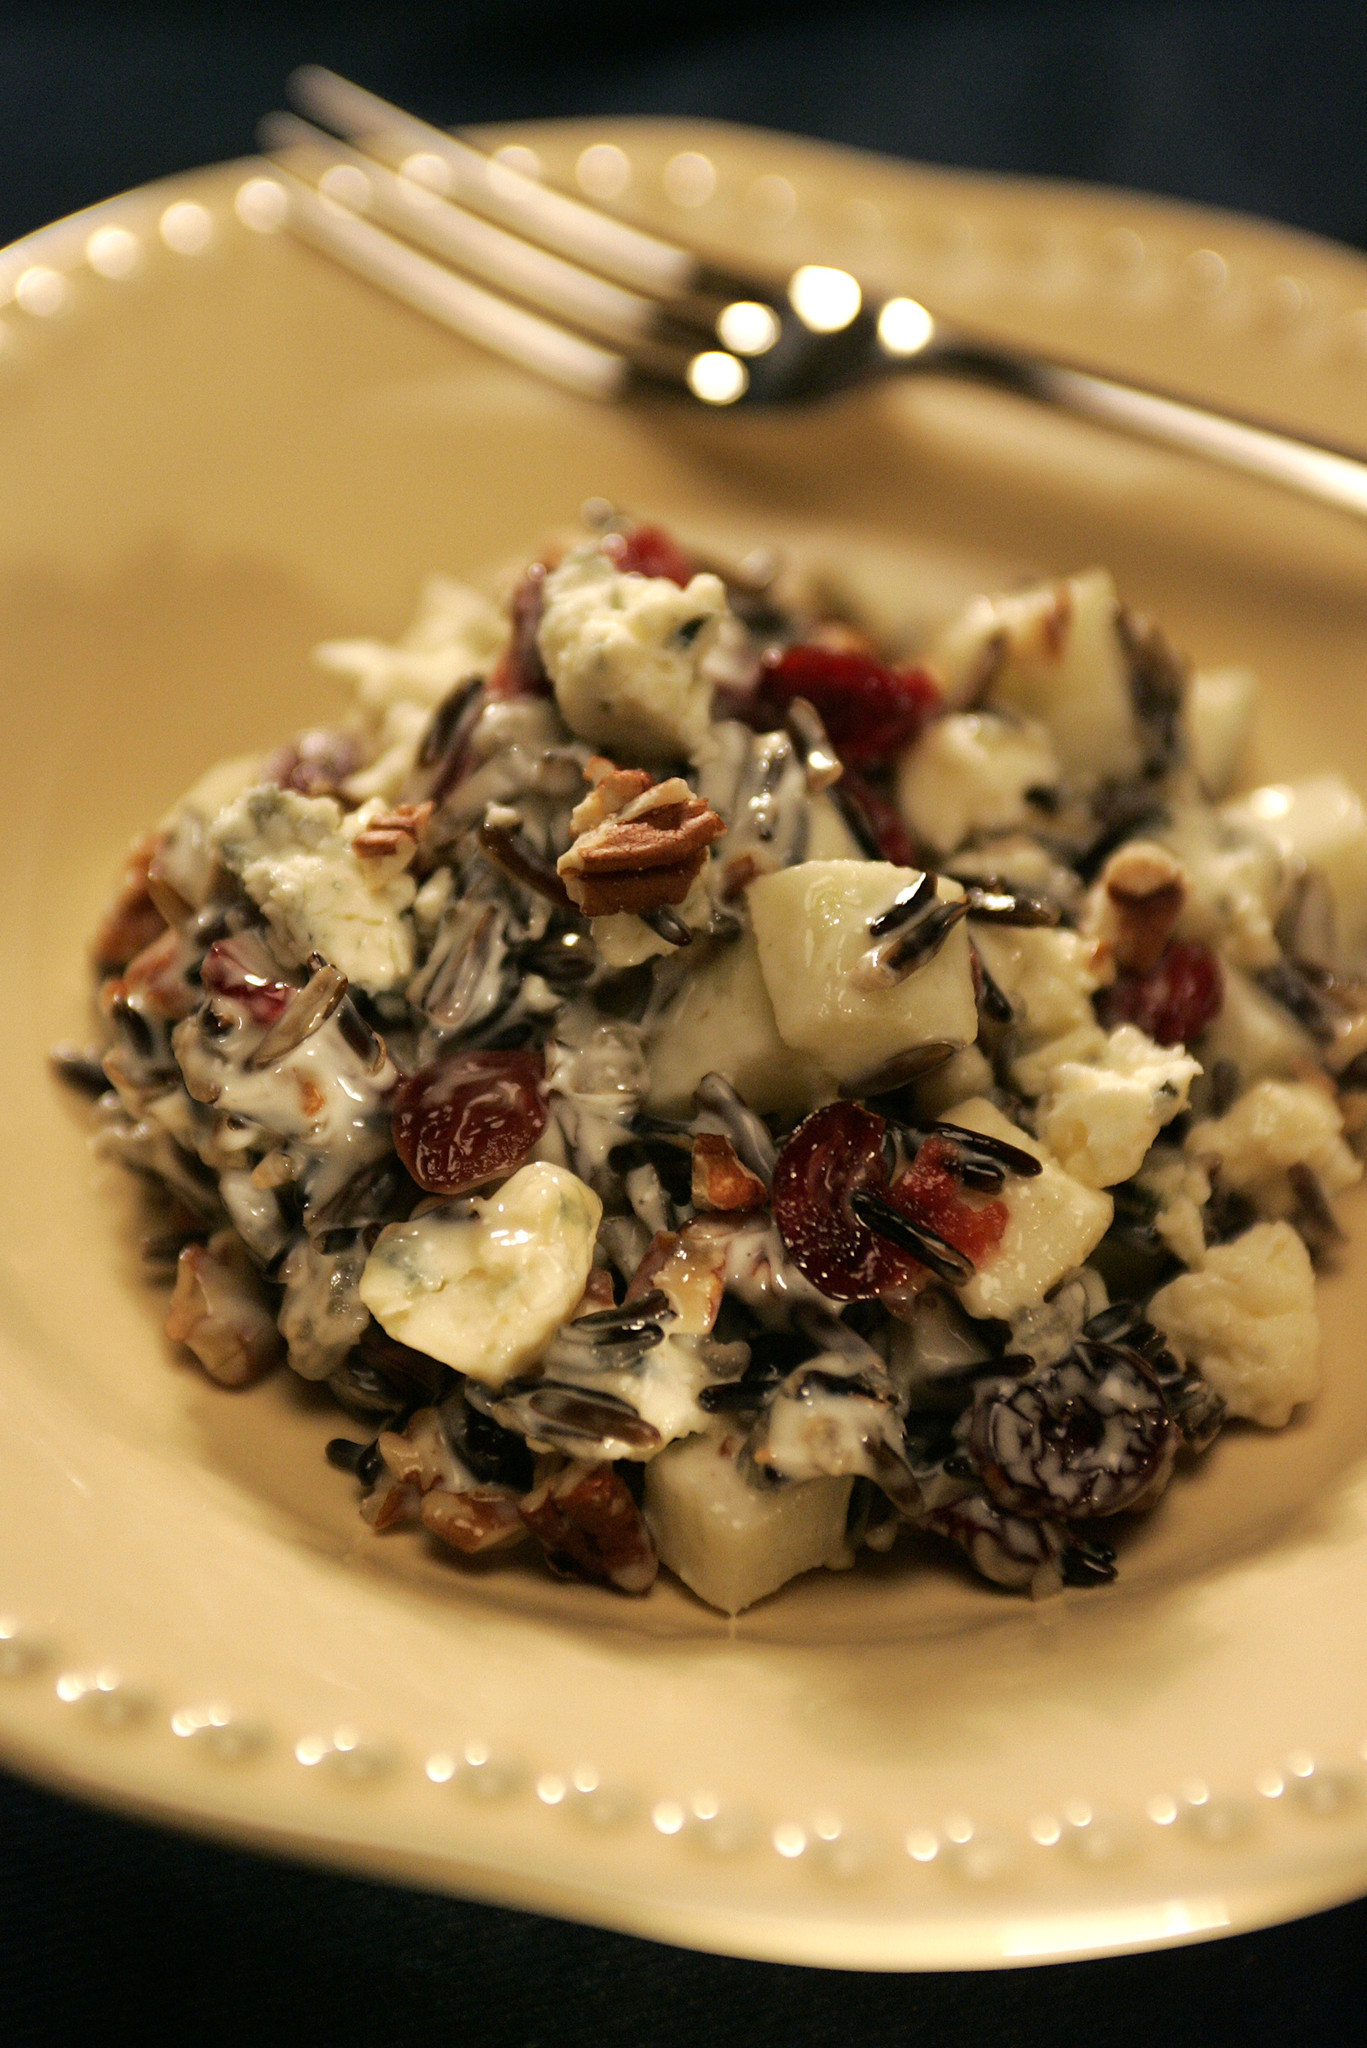 Photos: 97 great Thanksgiving recipes - Apple wild rice salad